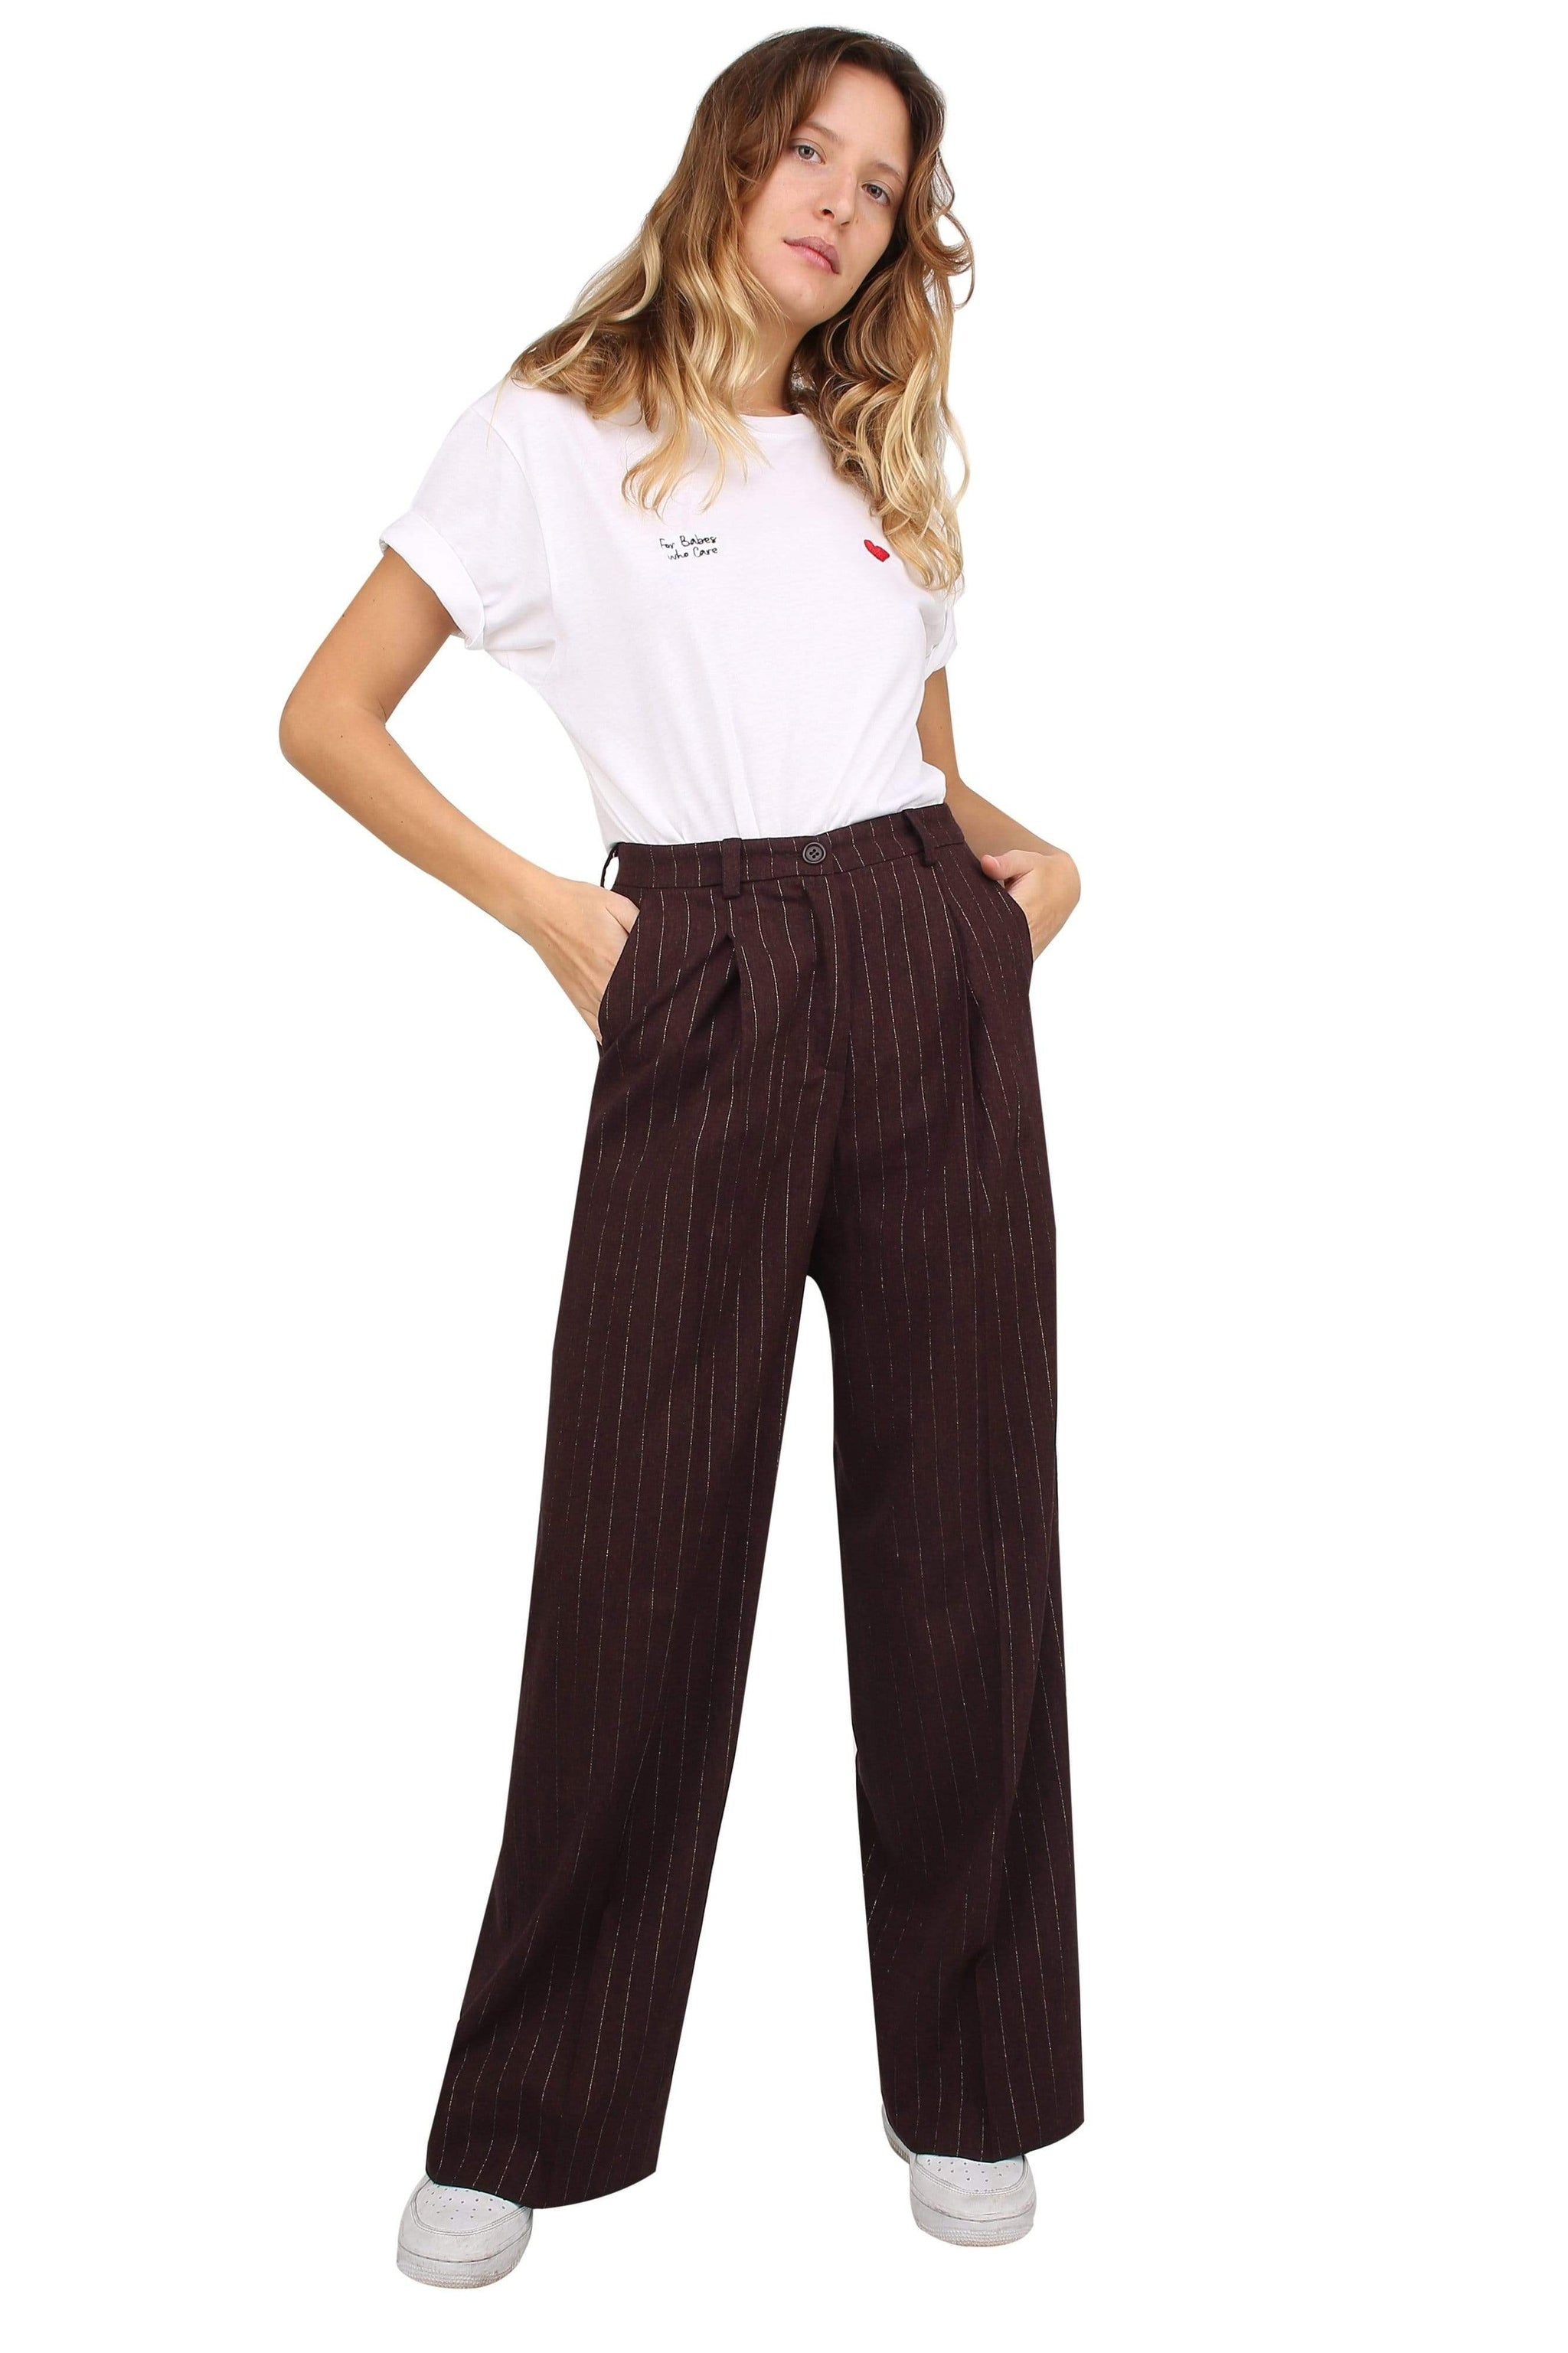 Pantalon Souldaze Collection Pantalon Isabel. Surplus de laine. mode durable mode éthique